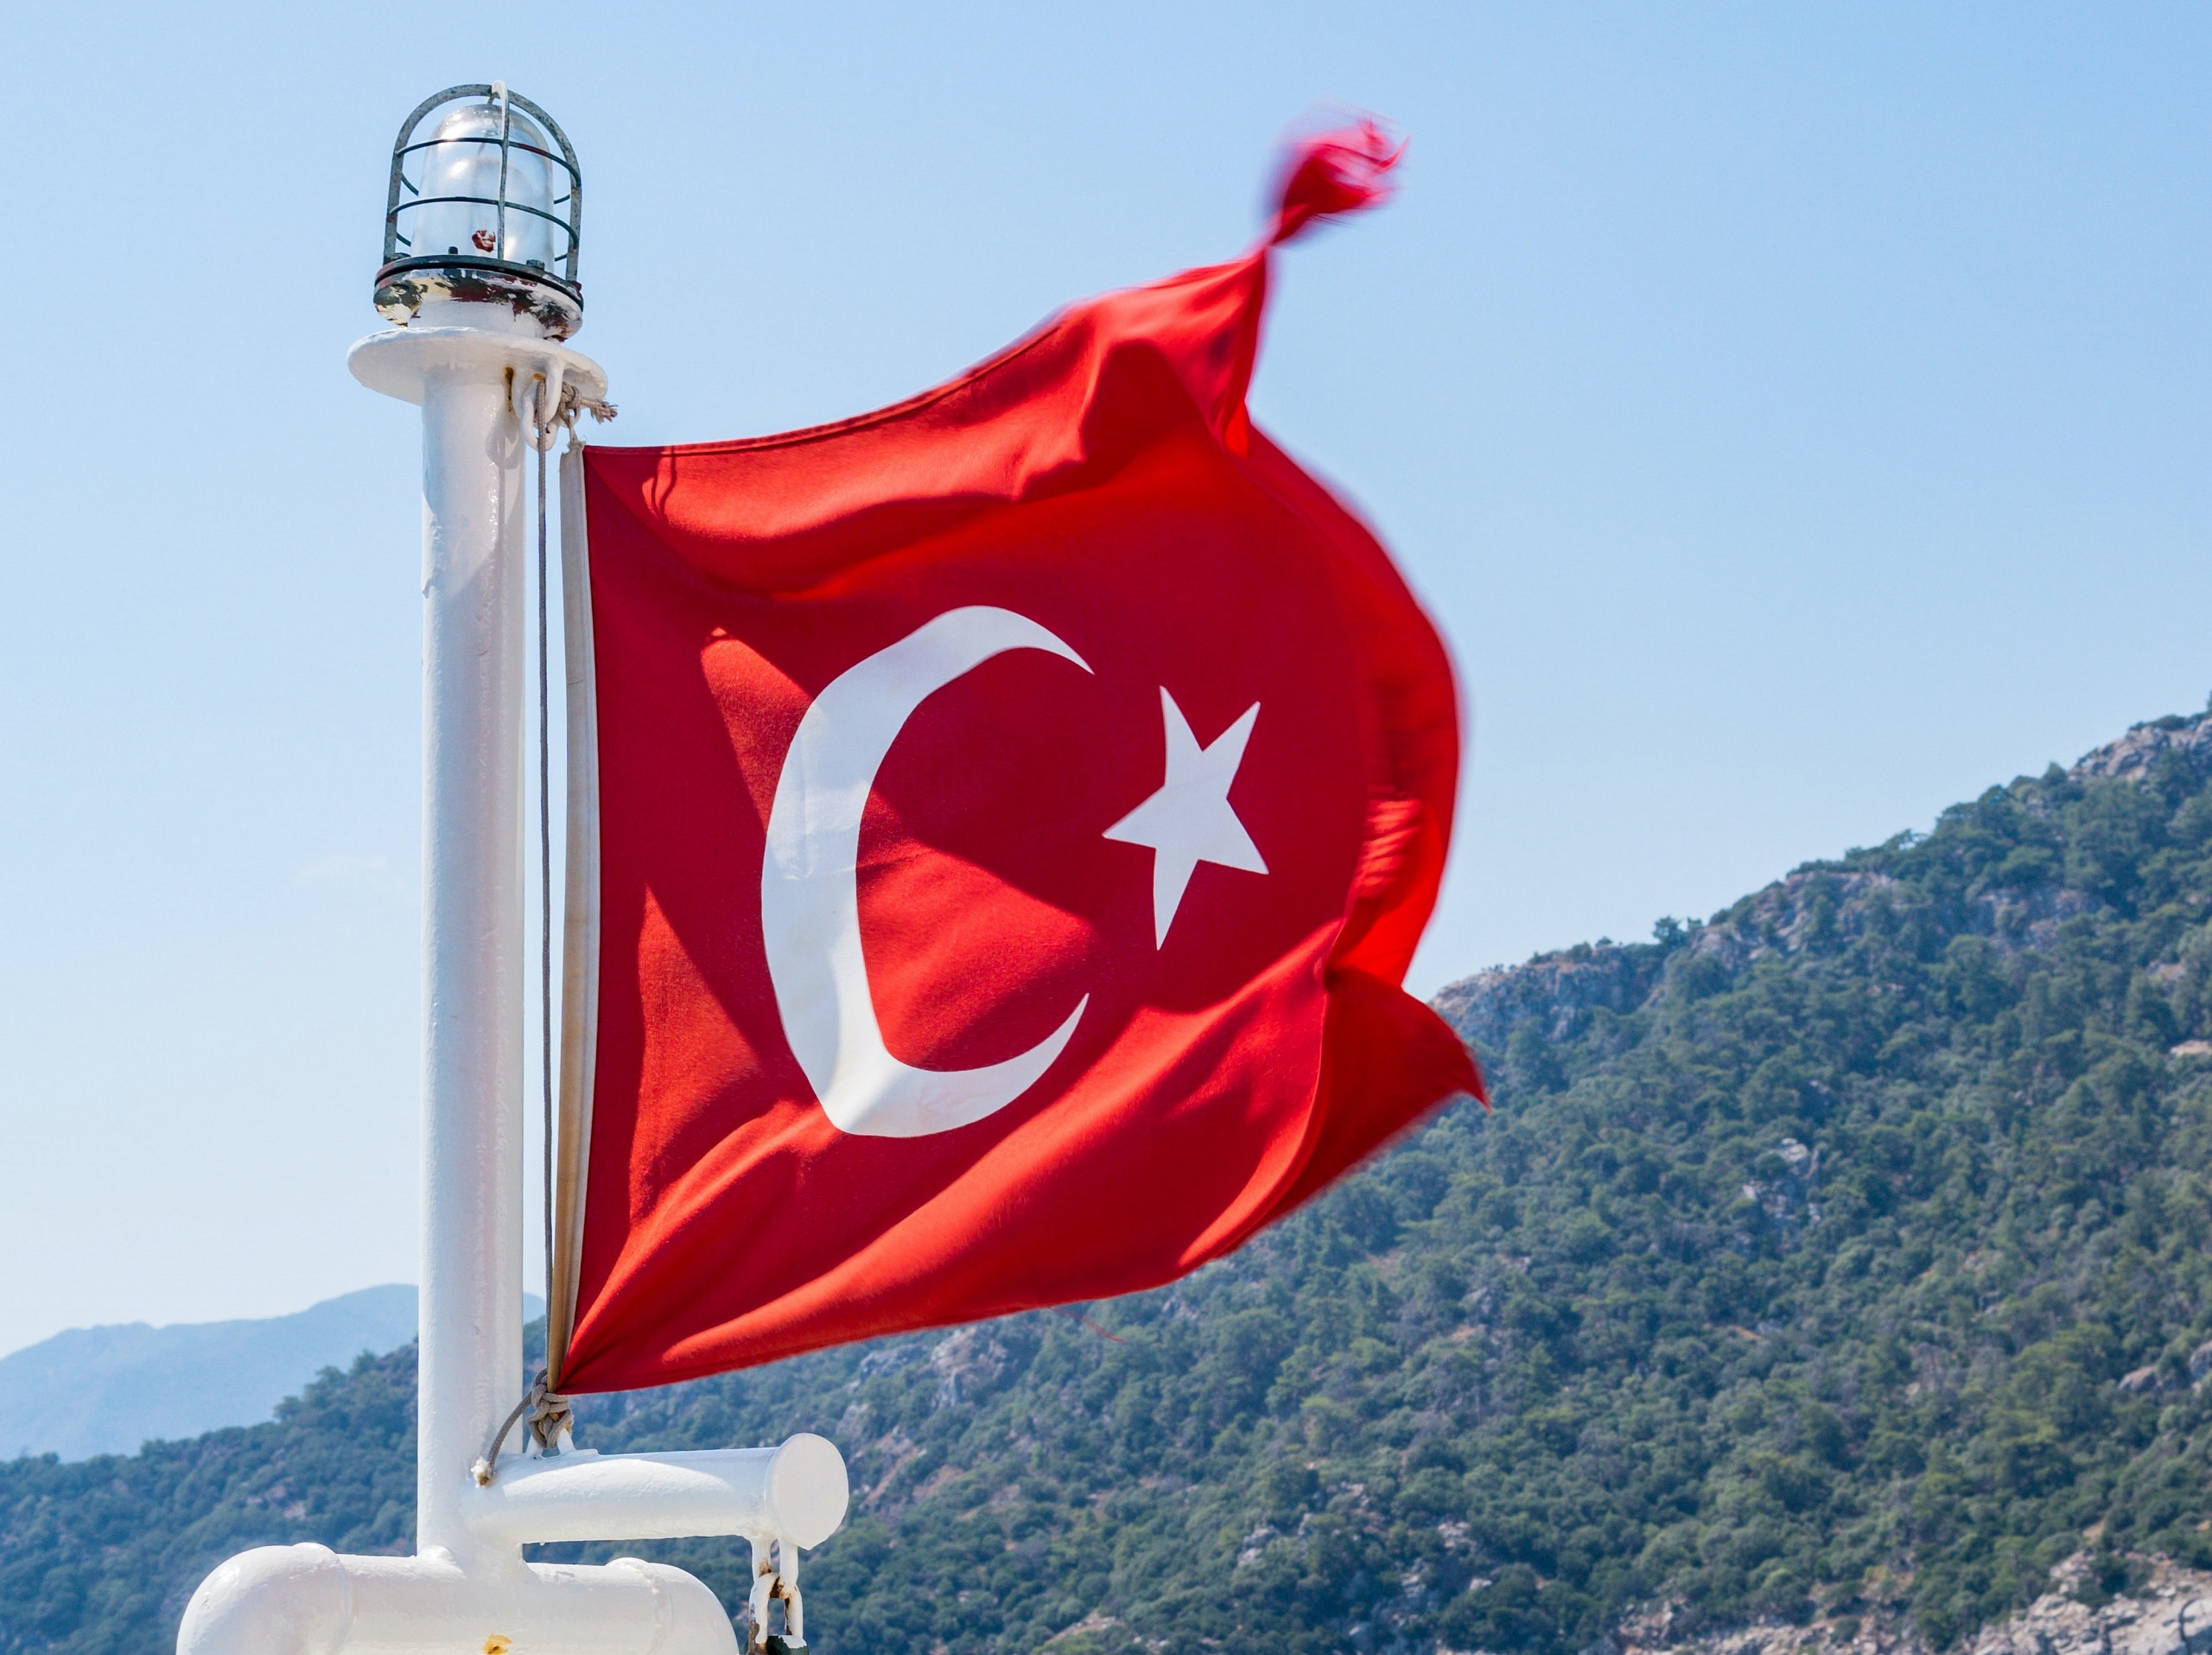 EU-Turkey relations and the accession negotiations